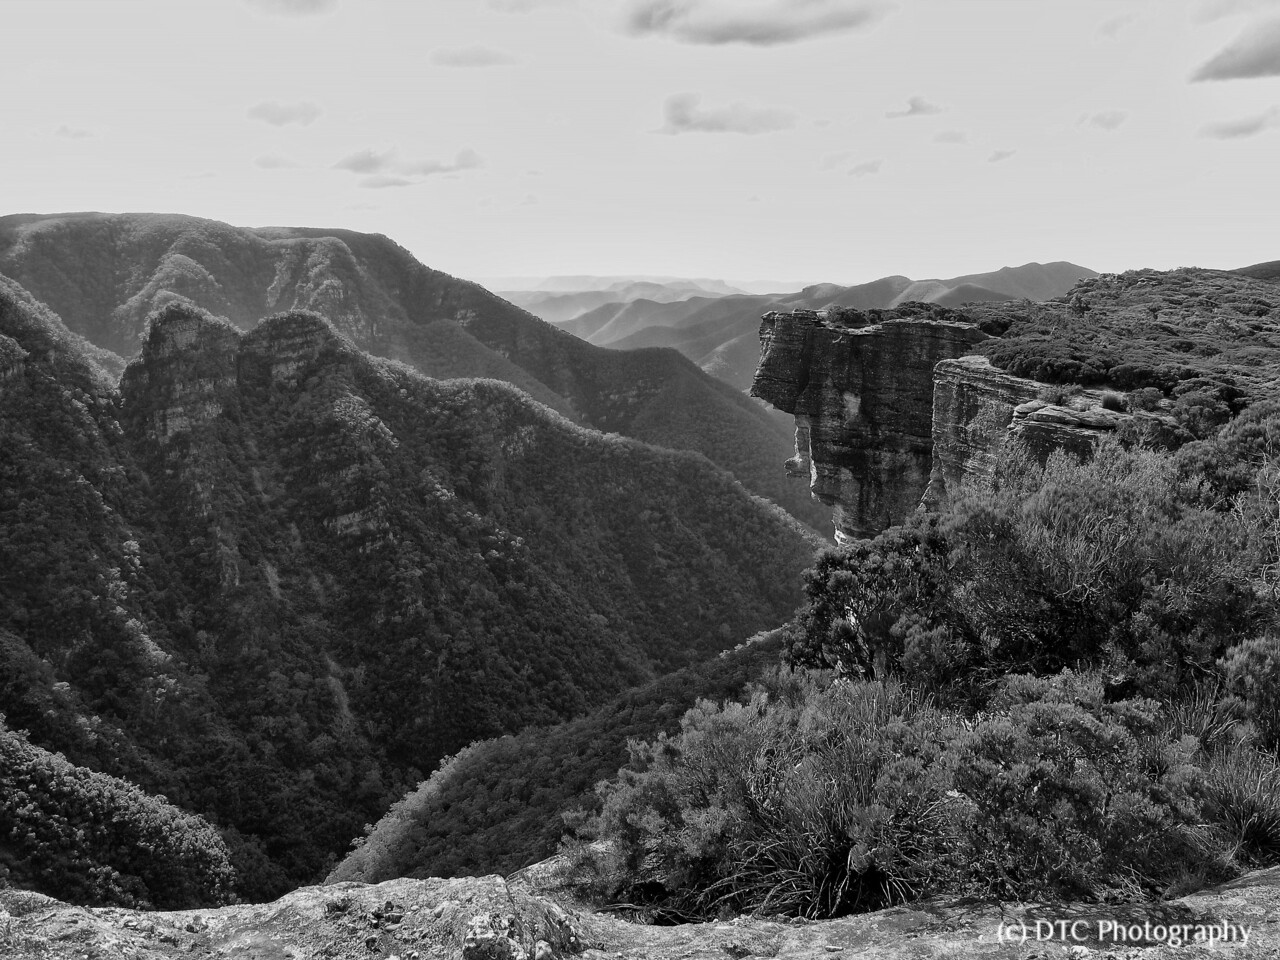 Across Kanangra Creek gorge to Thurat Spires & Tops